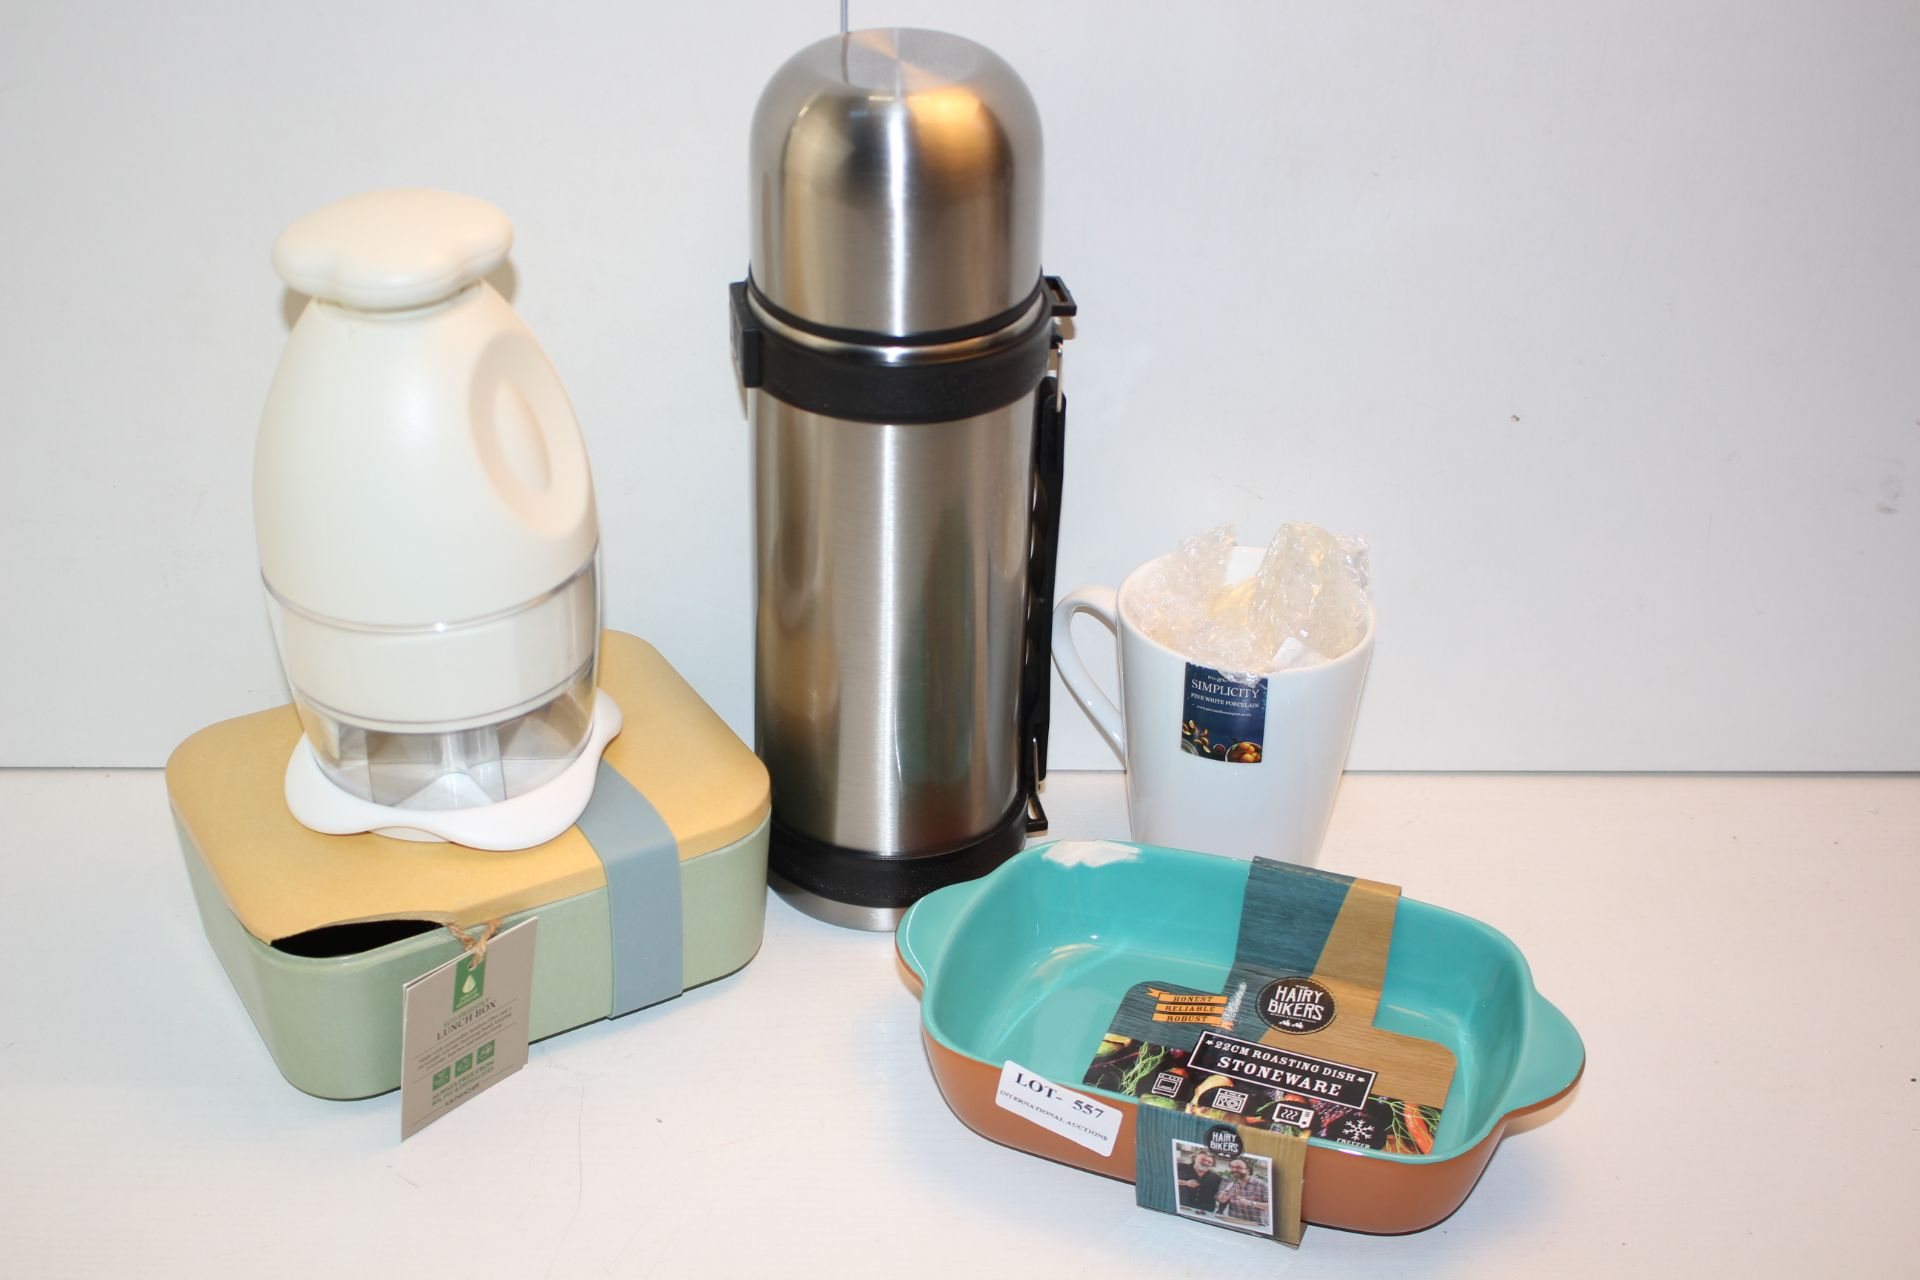 X5 KITCHEN AND HOME ITEMS, PLEASE SEE IMAGE Condition ReportAppraisal Available on Request- All